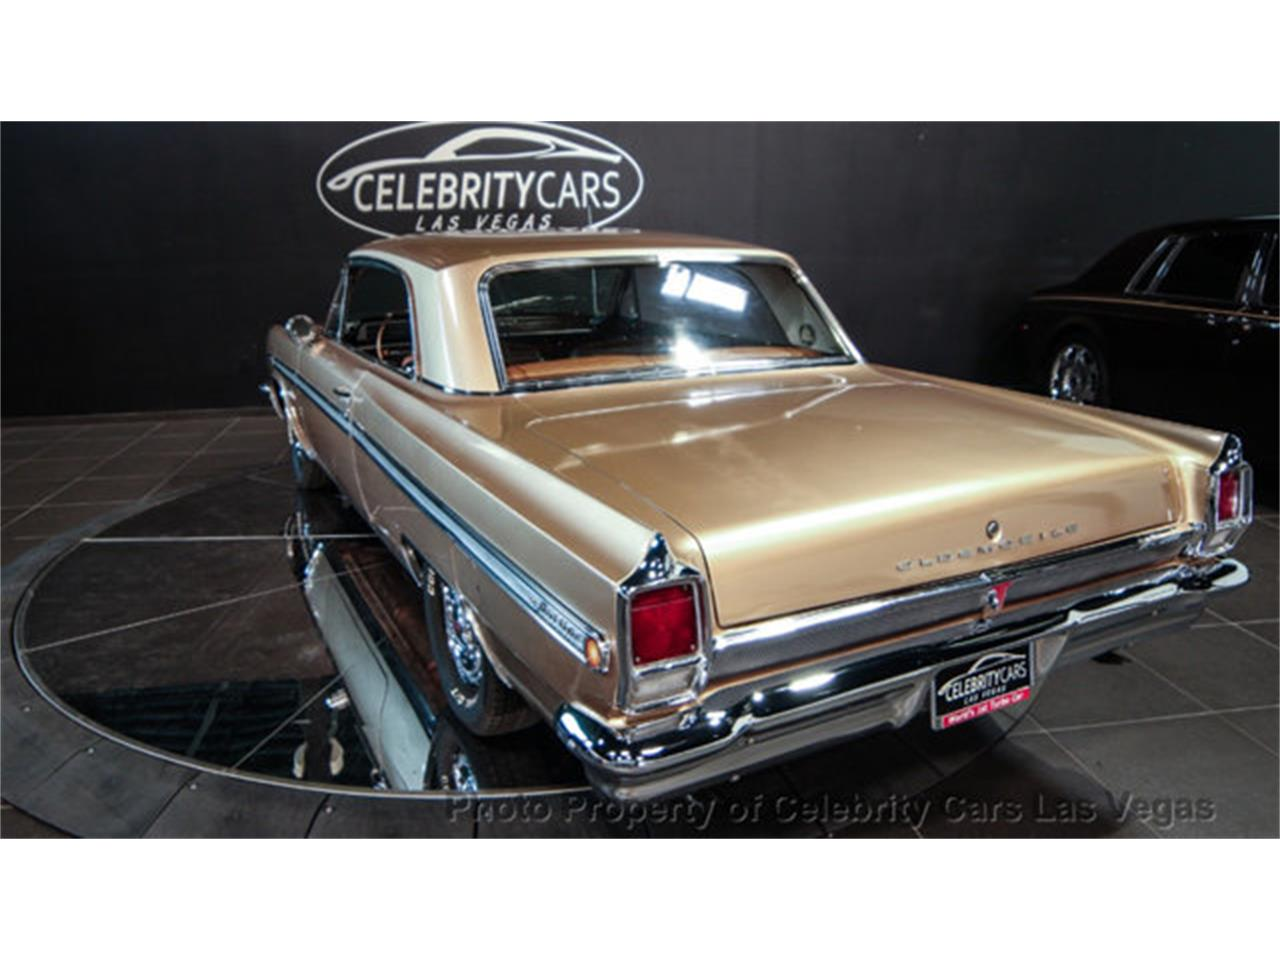 Large Picture of 1963 Jet fire Turbocharged - $61,500.00 Offered by Celebrity Cars Las Vegas - J98V